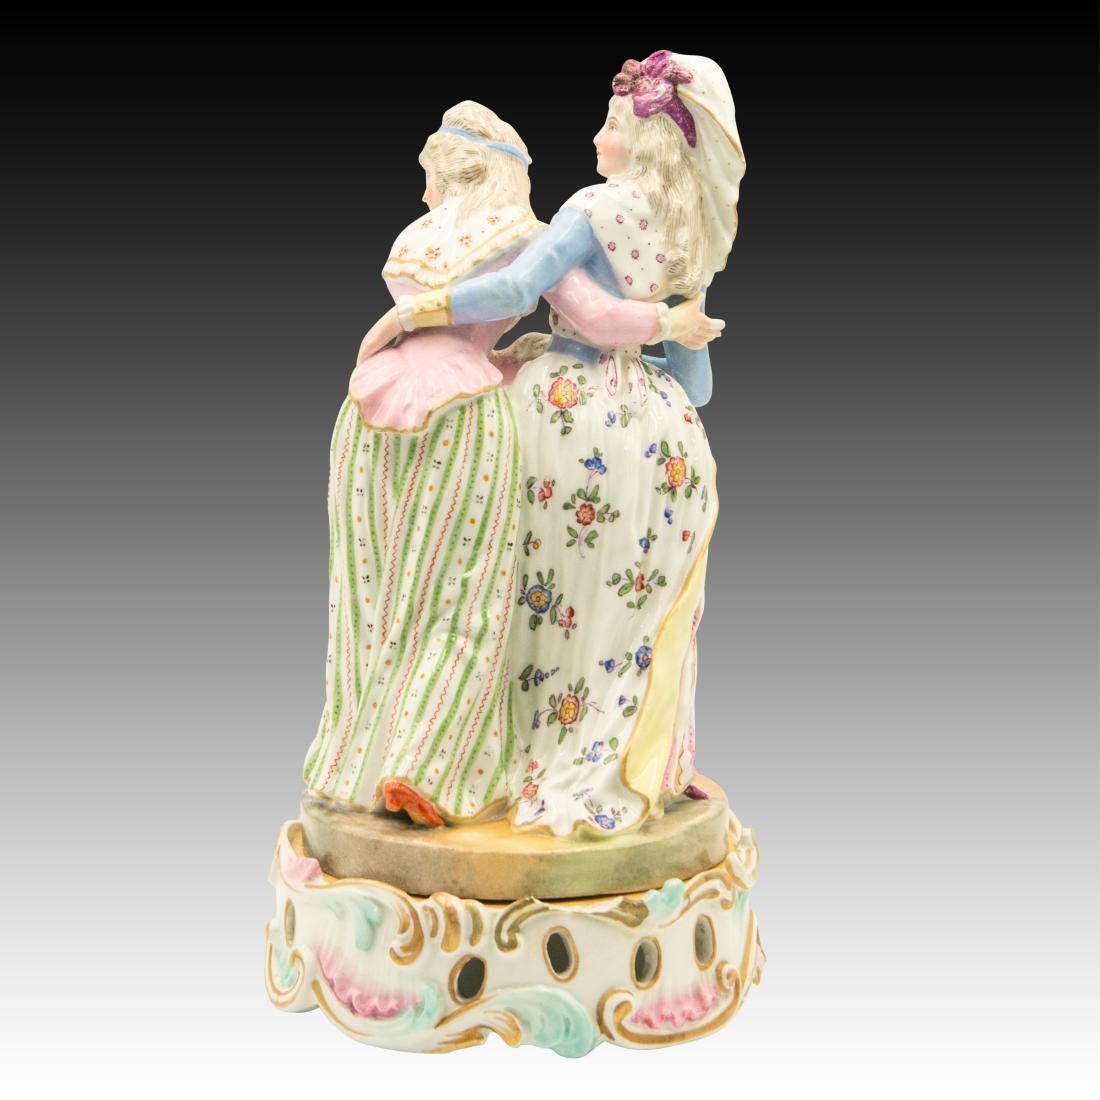 Meissen Two Ladies with Colorful Attire Figurine - 3